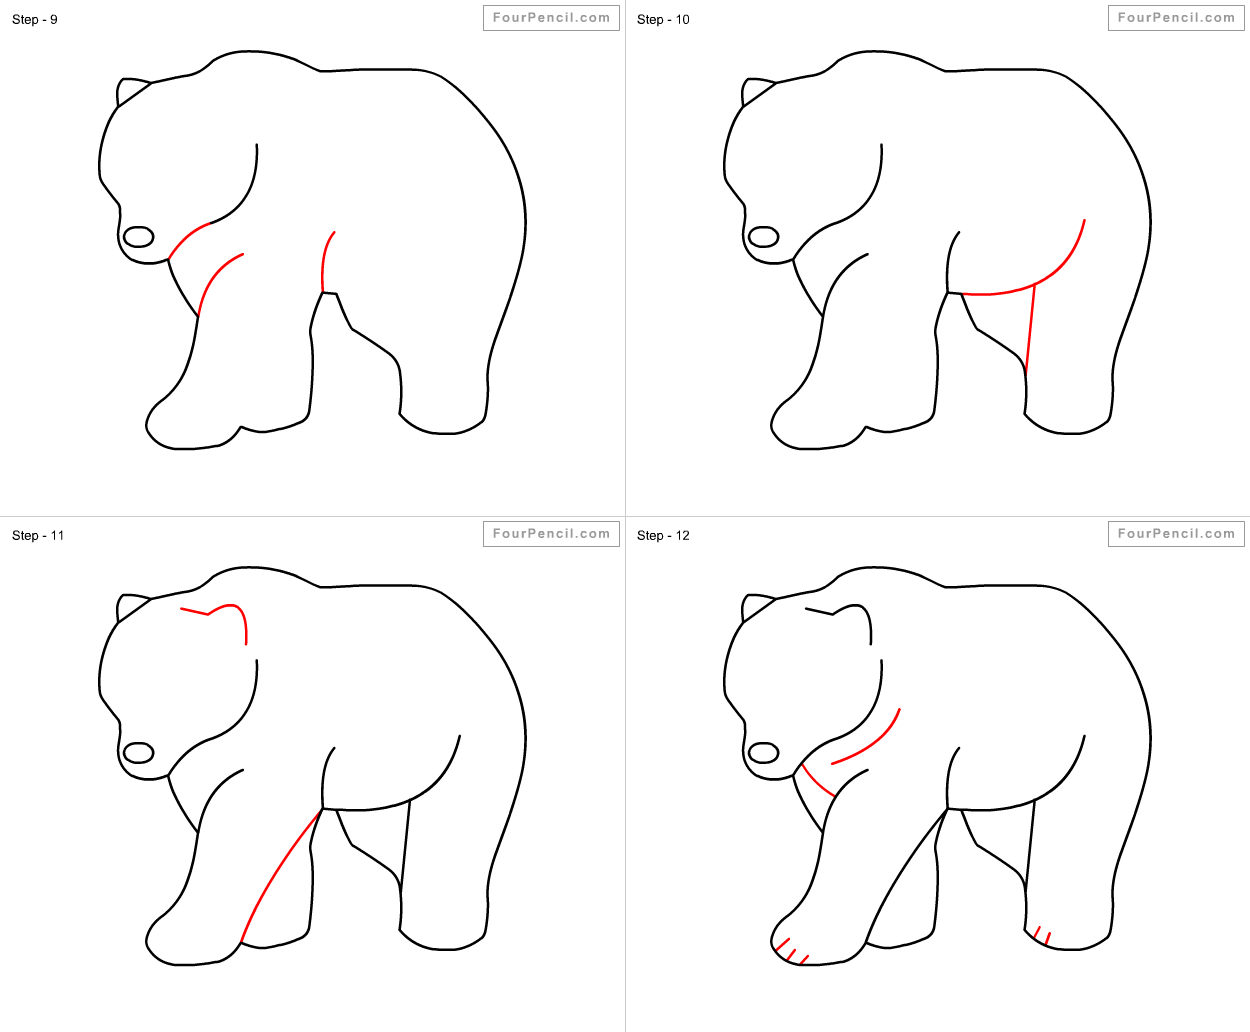 Uncategorized How To Draw A Bear For Kids how to draw bear for kids slide 3 click enlarge enlarge